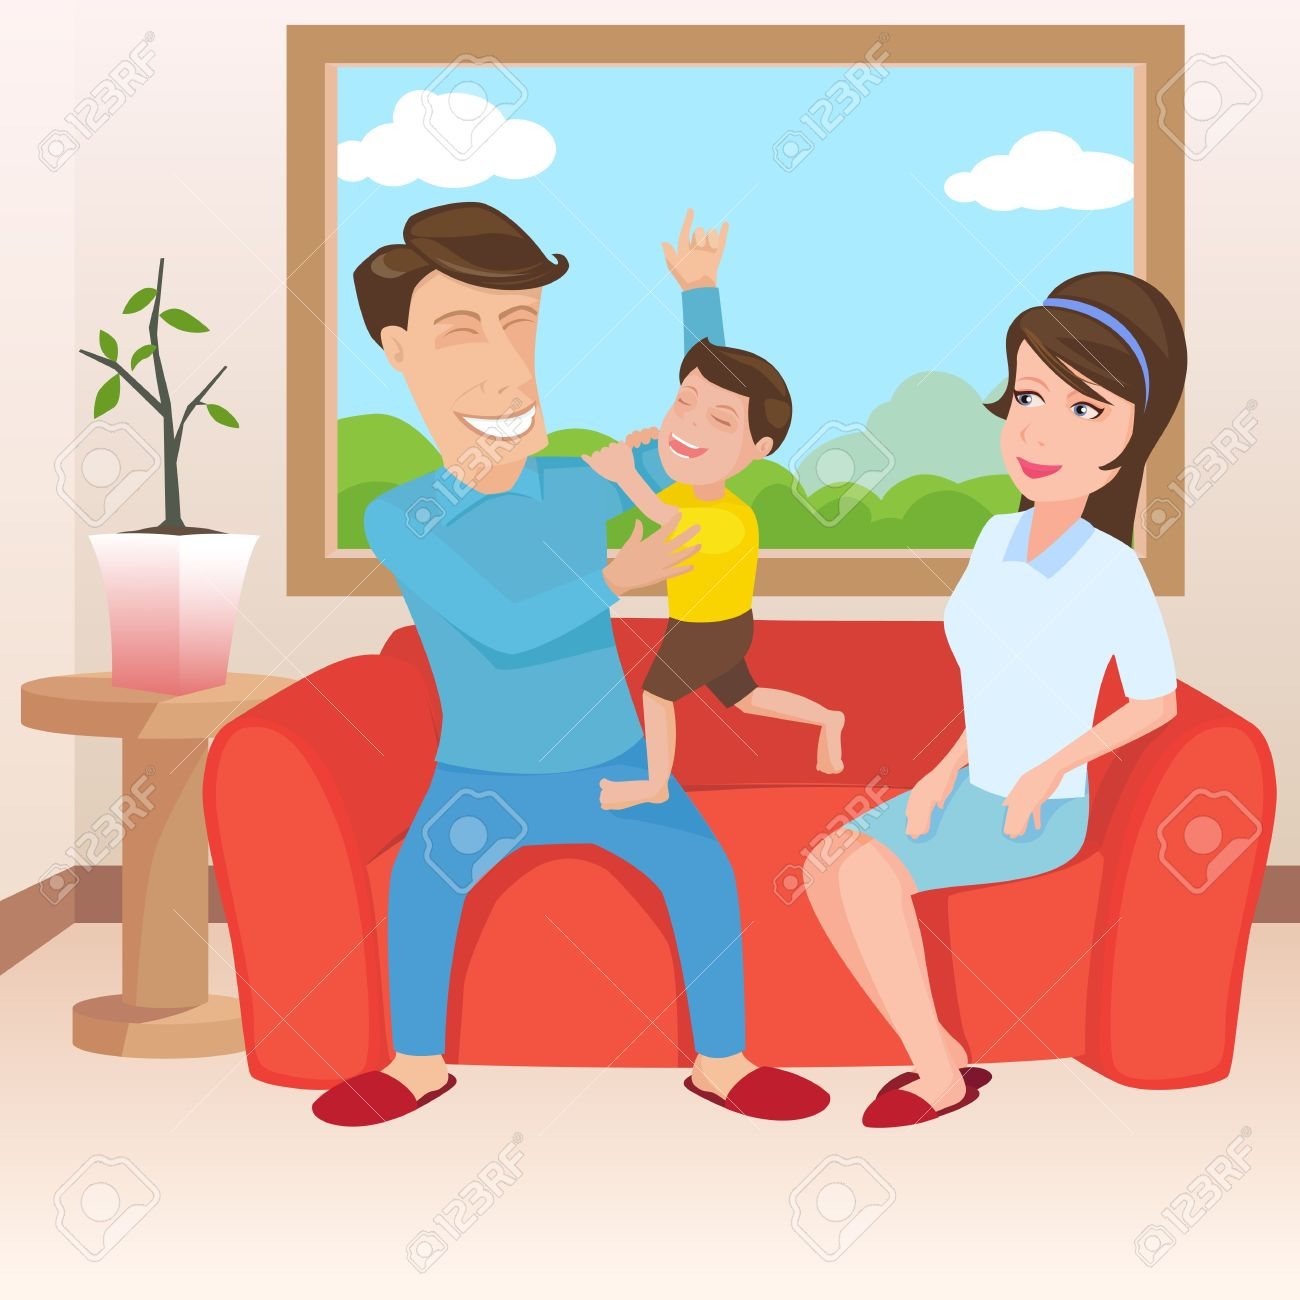 Family in the living room clipart.